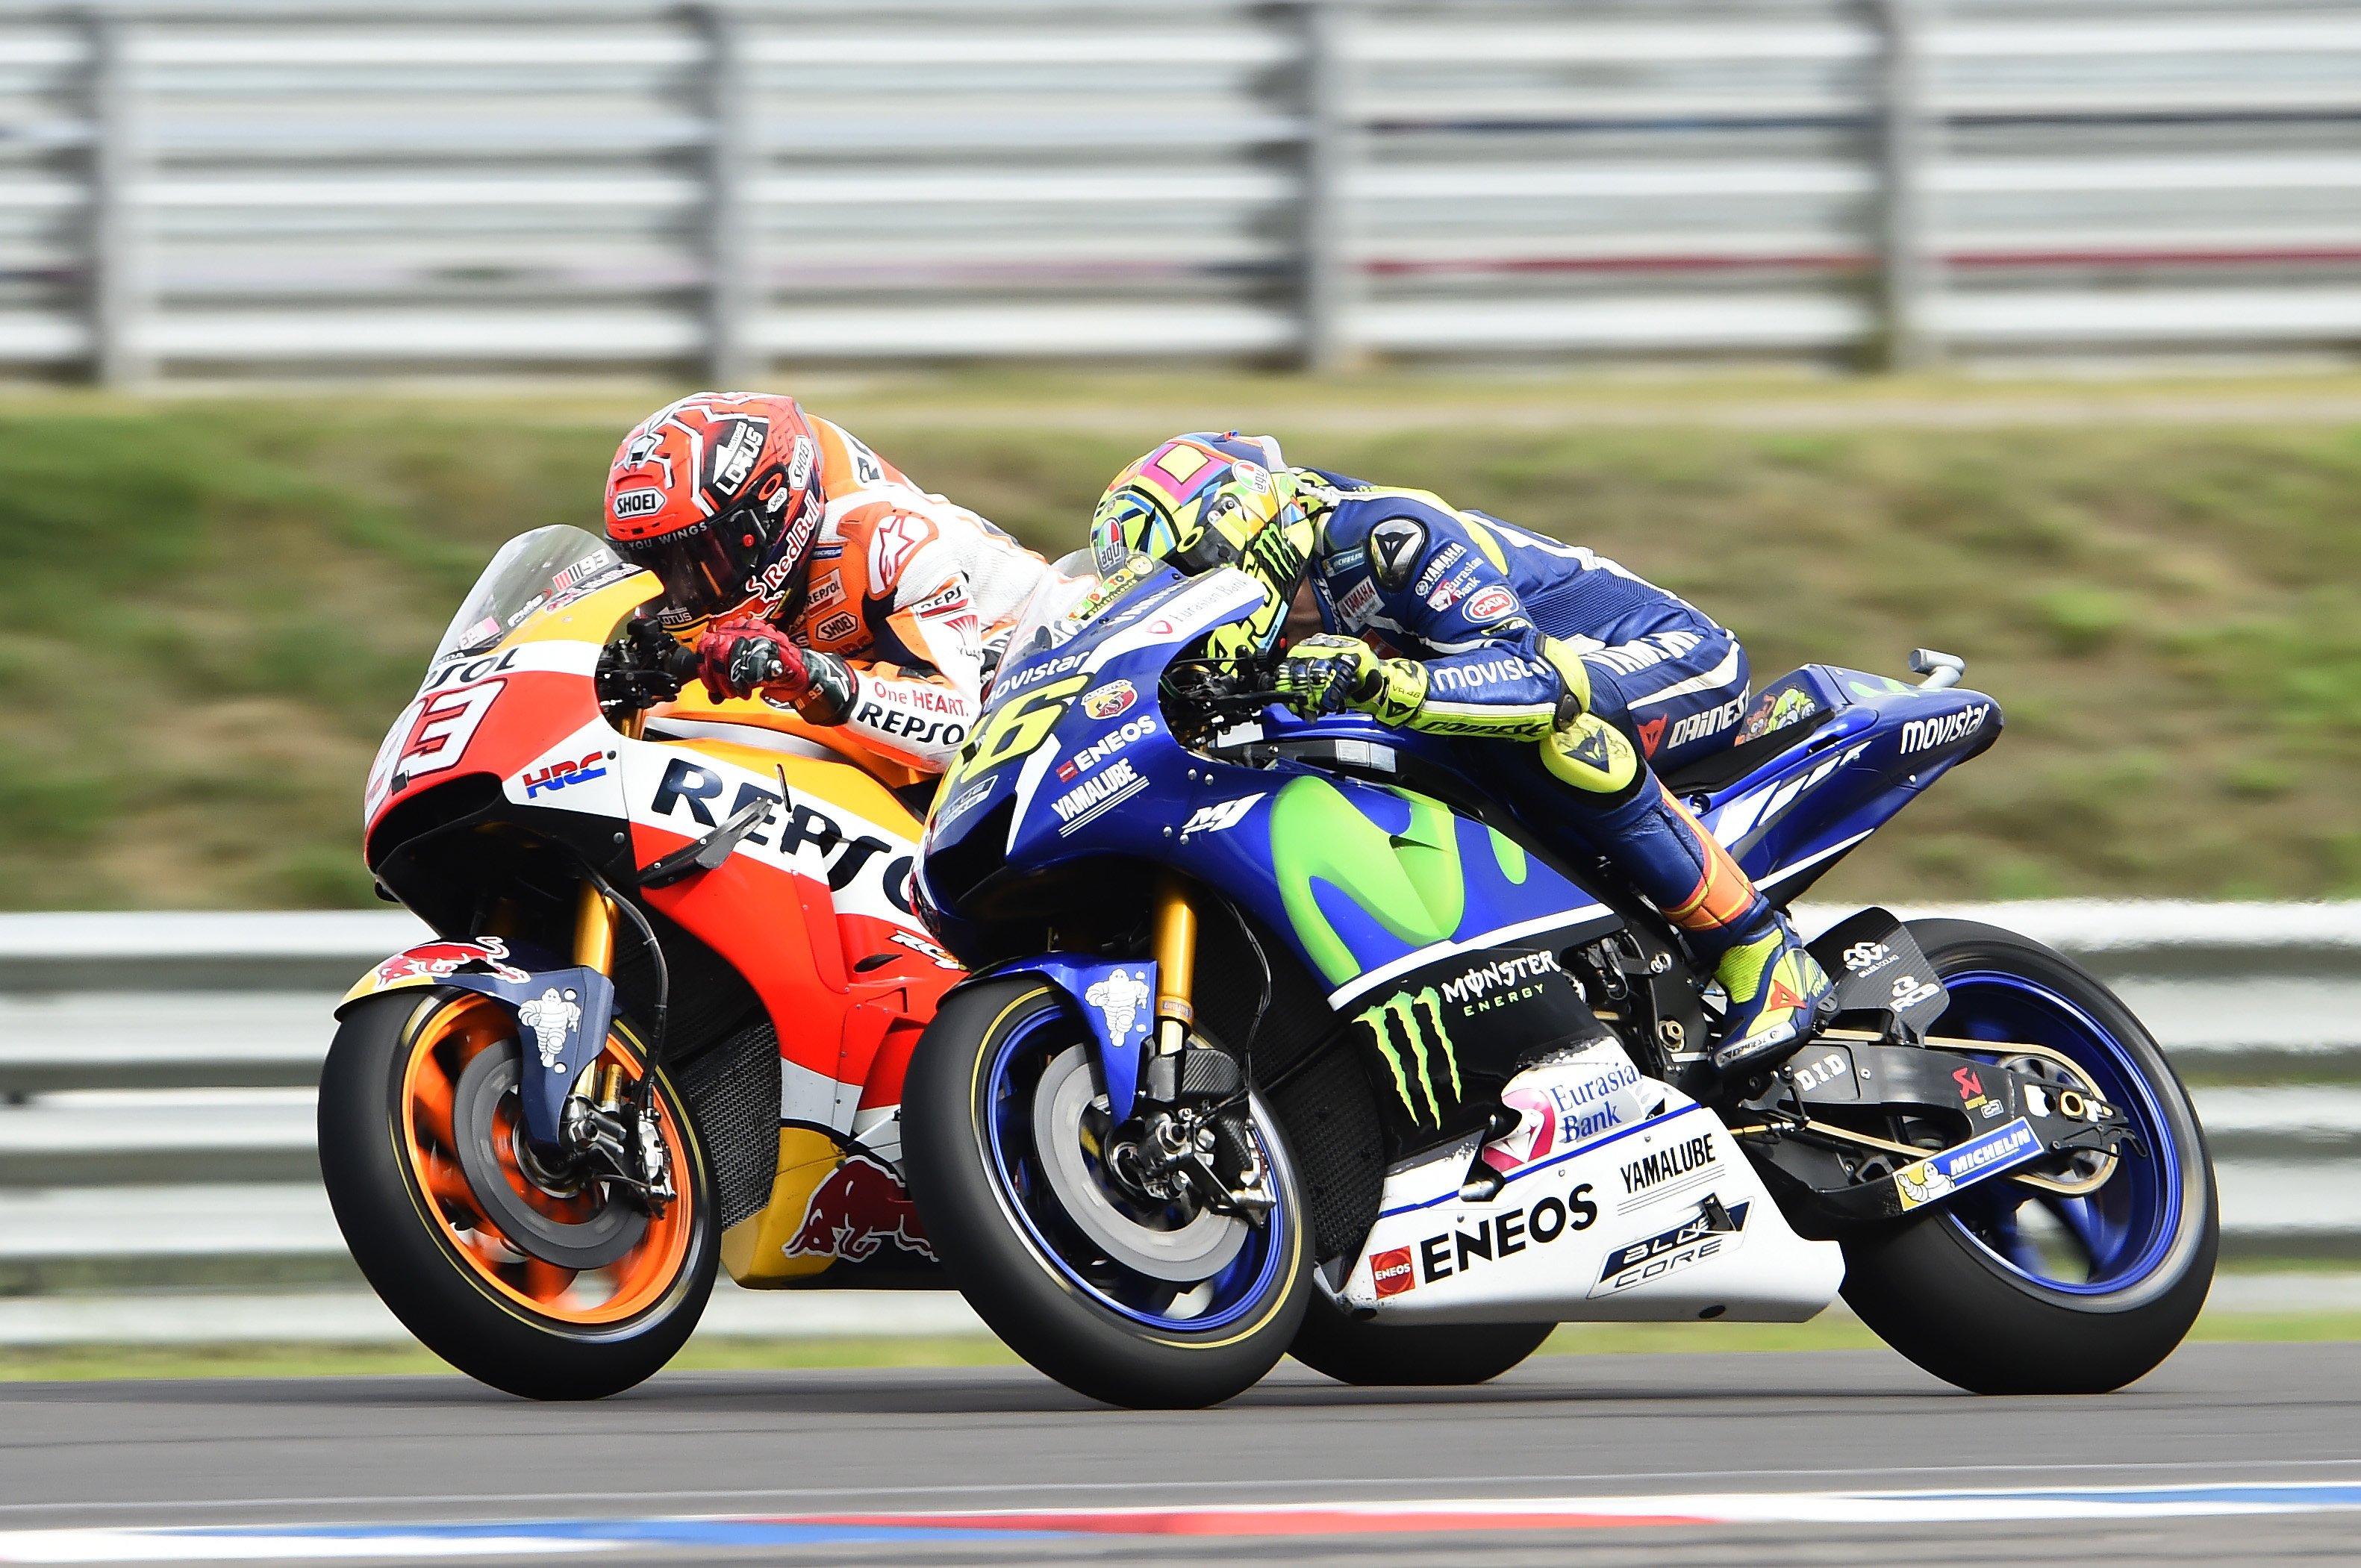 Ten 10 fastest MotoGP circuits | Visordown